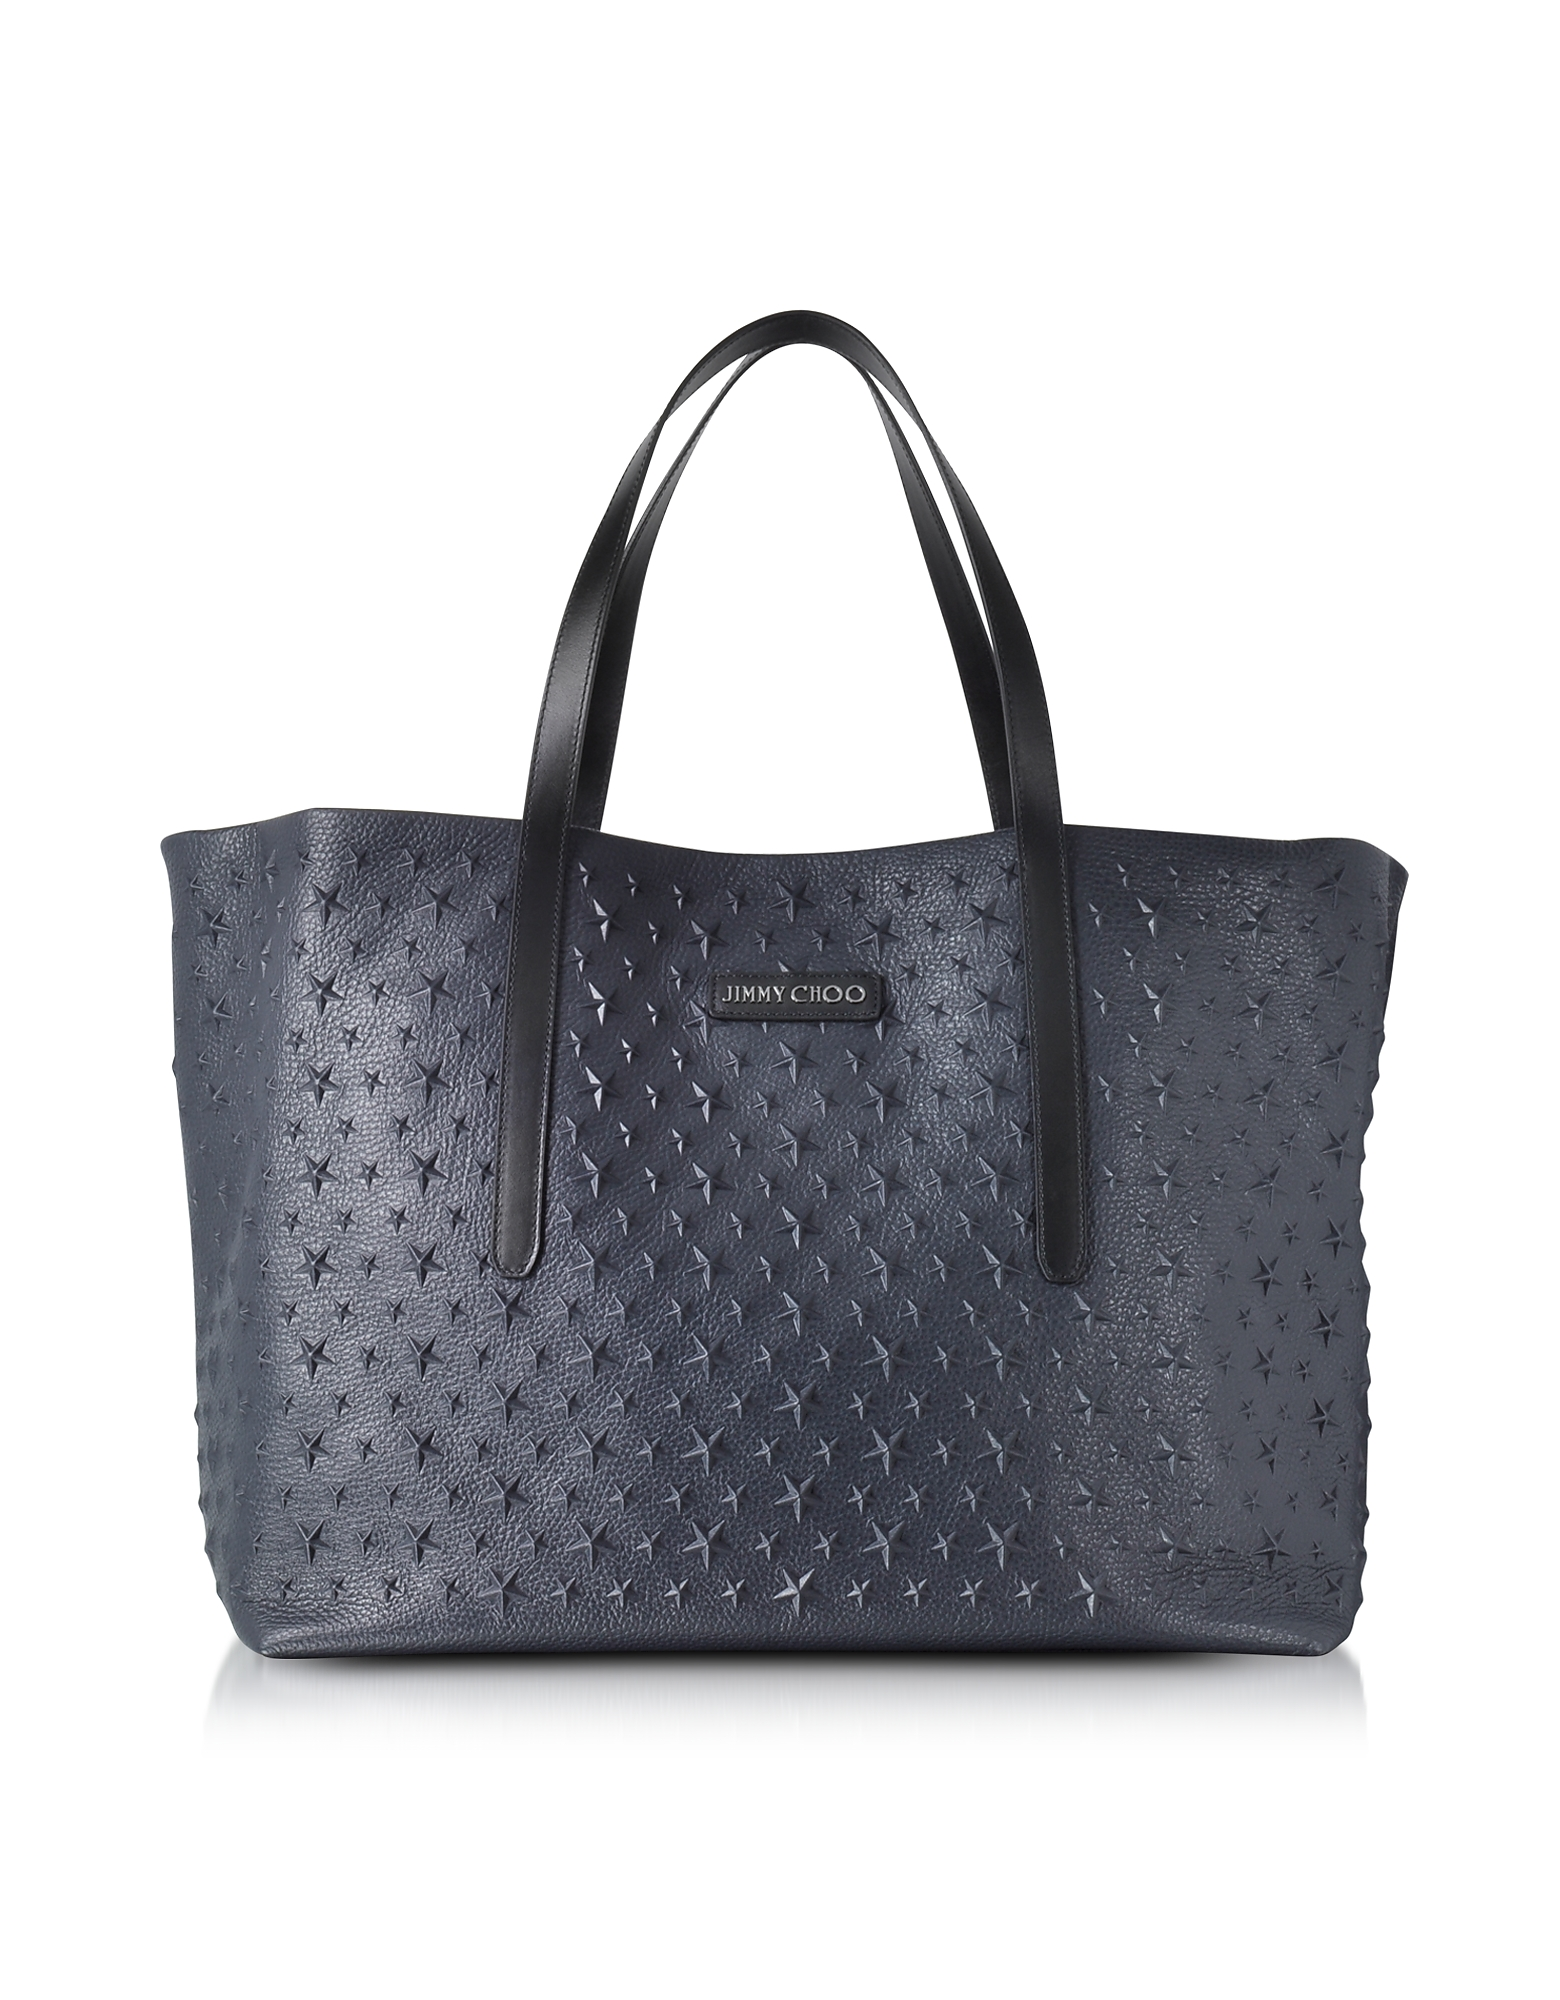 Jimmy Choo Handbags, Navy Blue Stars Embossed Large Tote Bag